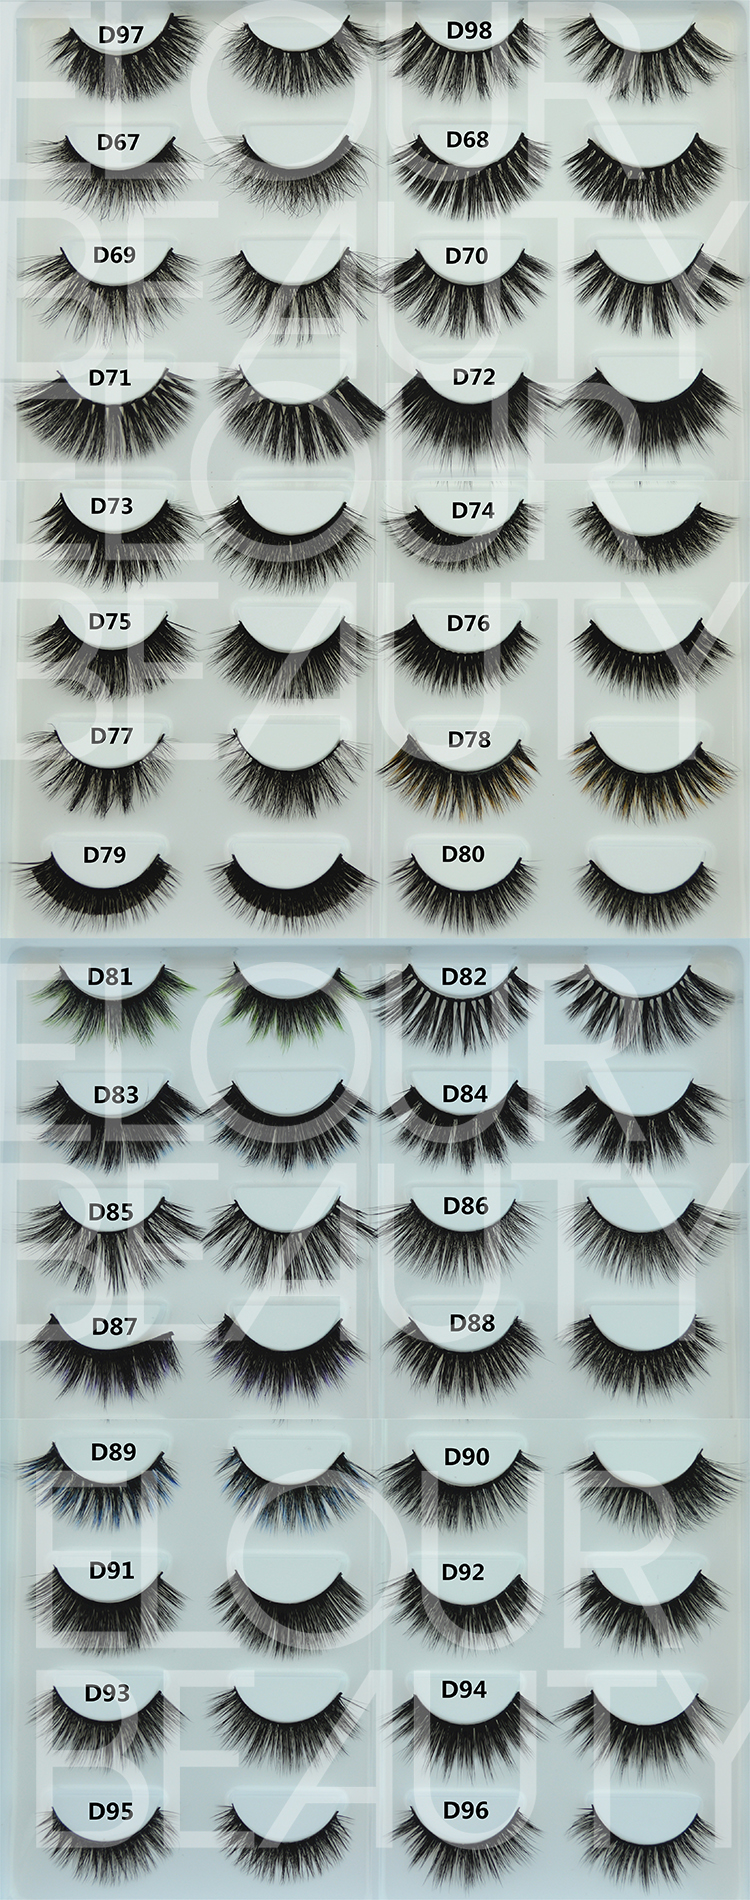 many more styles faux mink 3d lashes China.jpg